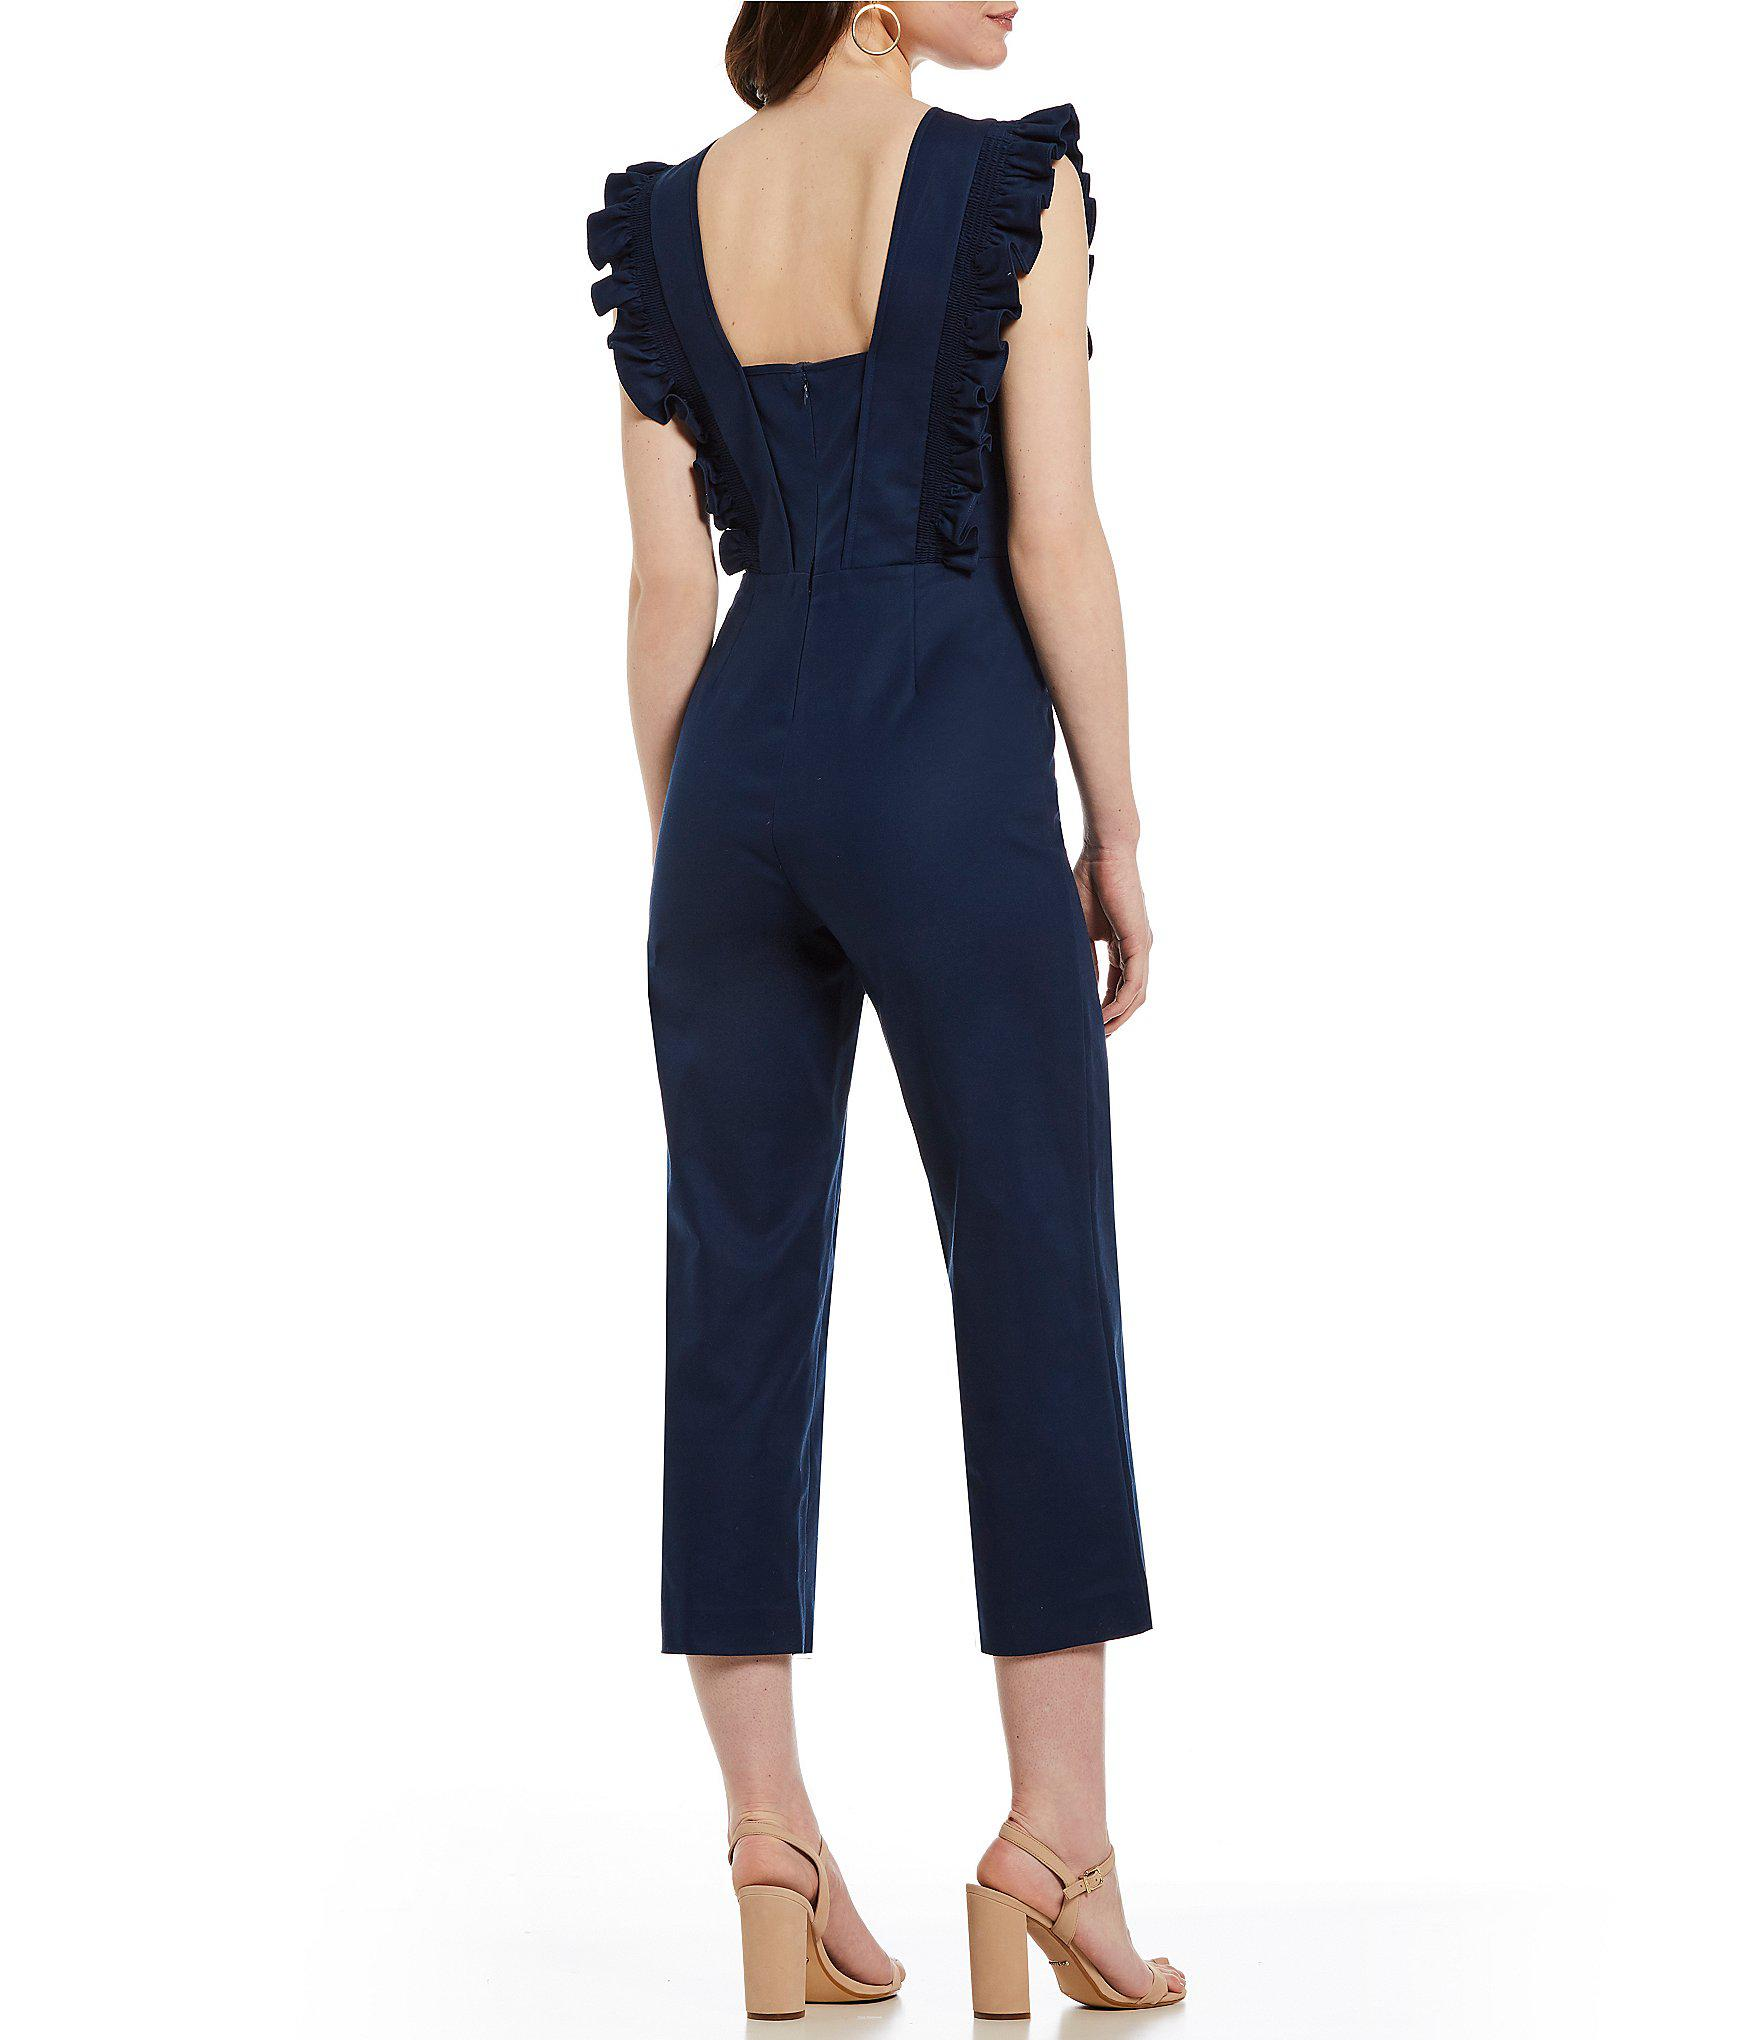 8656924bc27b Gianni Bini Liam Ruffle Shoulder Cropped Jumpsuit in Blue - Lyst